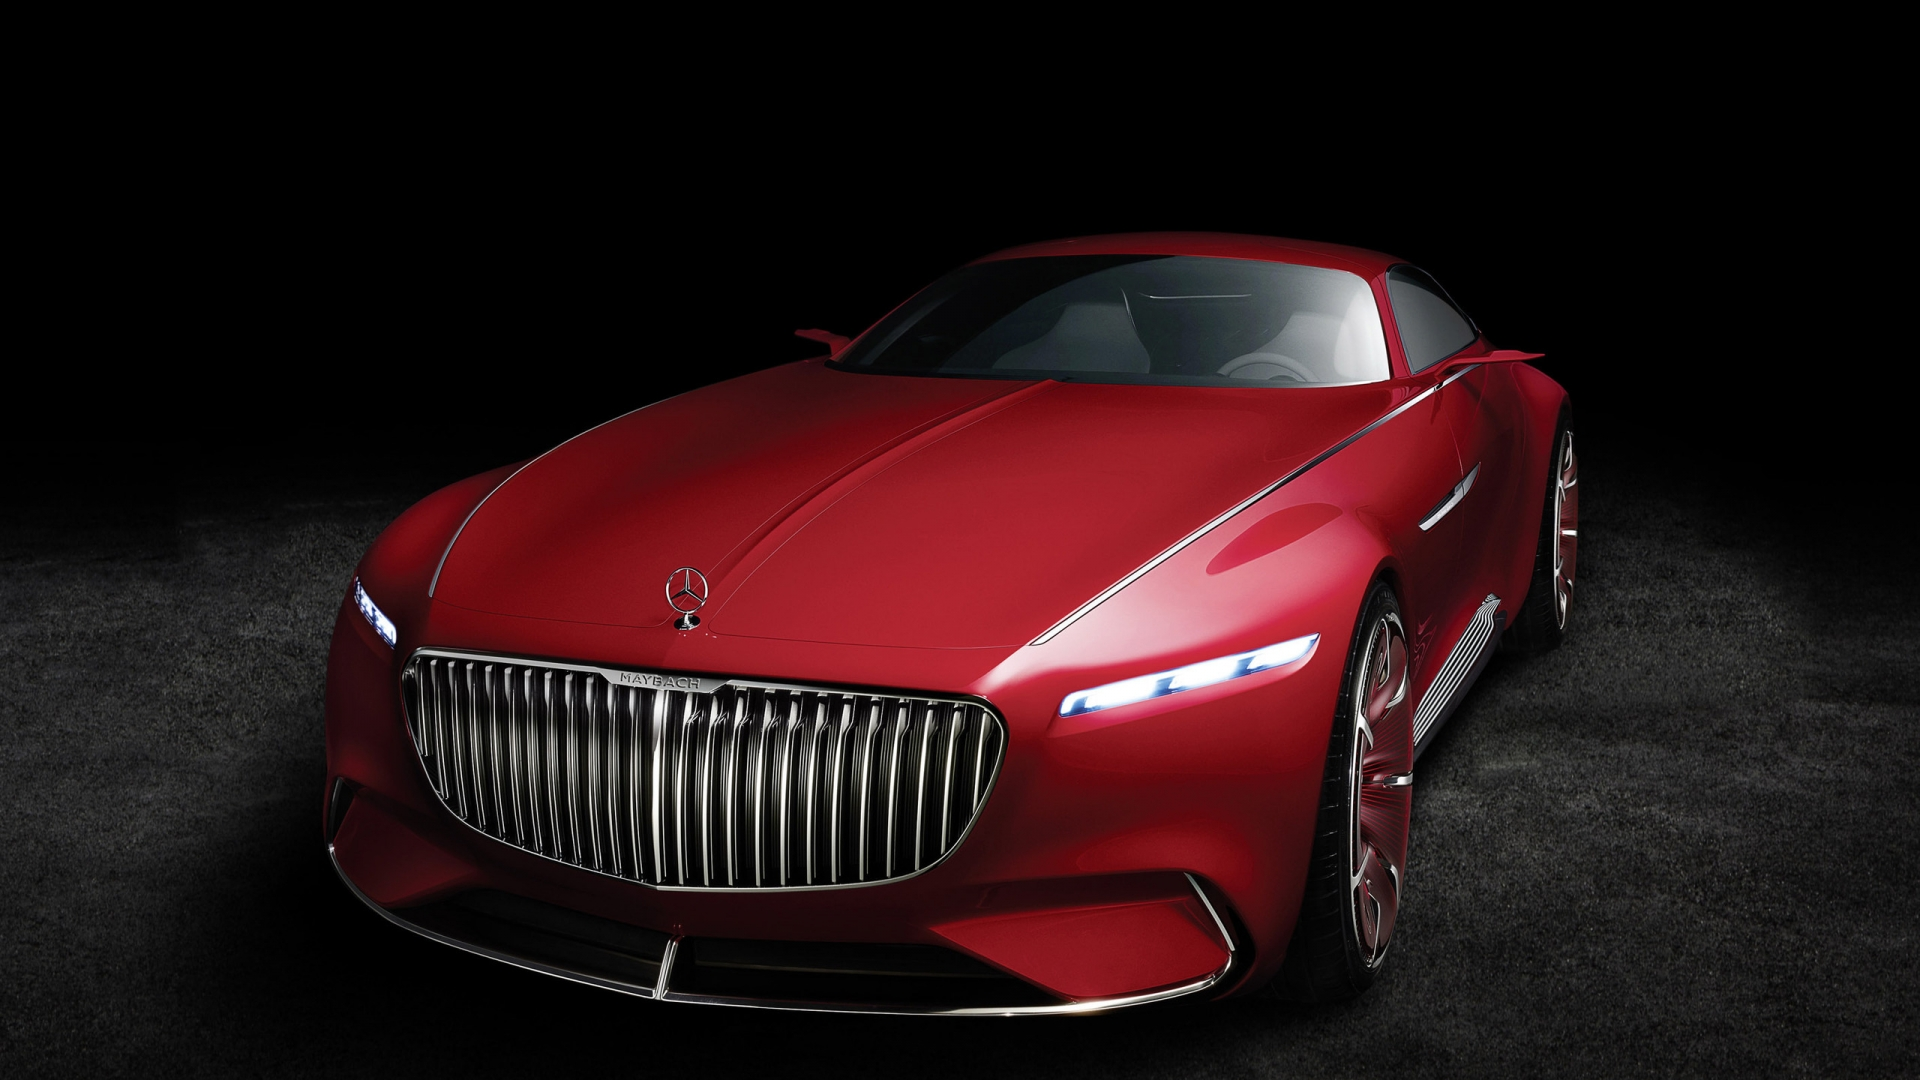 2016 Vision Mercedes Maybach 6 for 1920 x 1080 HDTV 1080p resolution